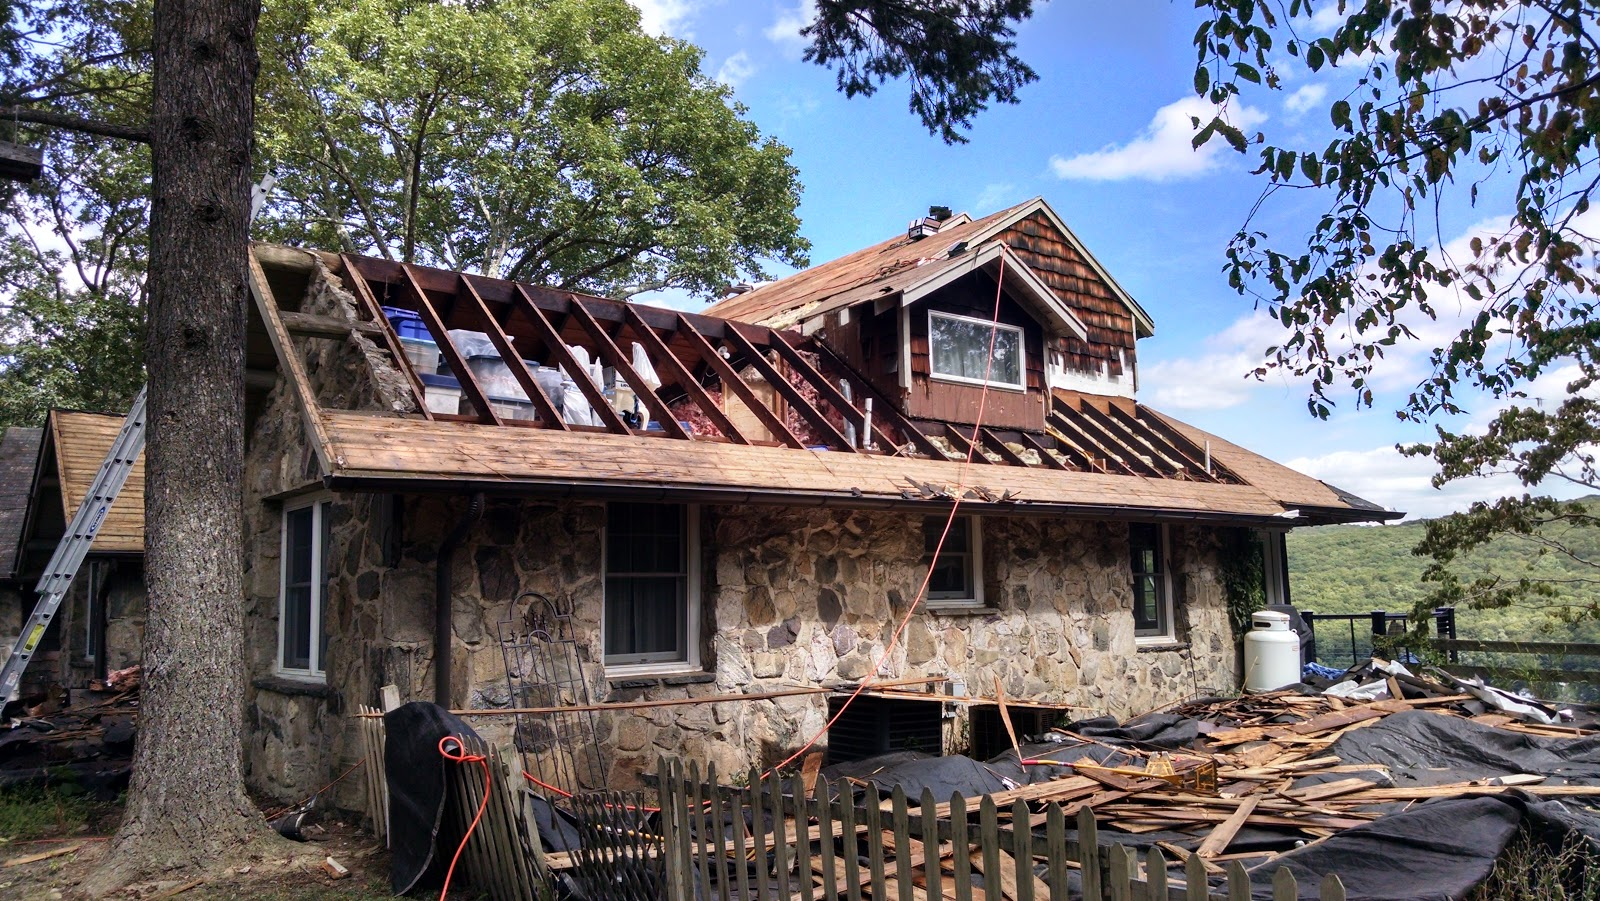 5 Things You Should Consider When Replacing a Roof